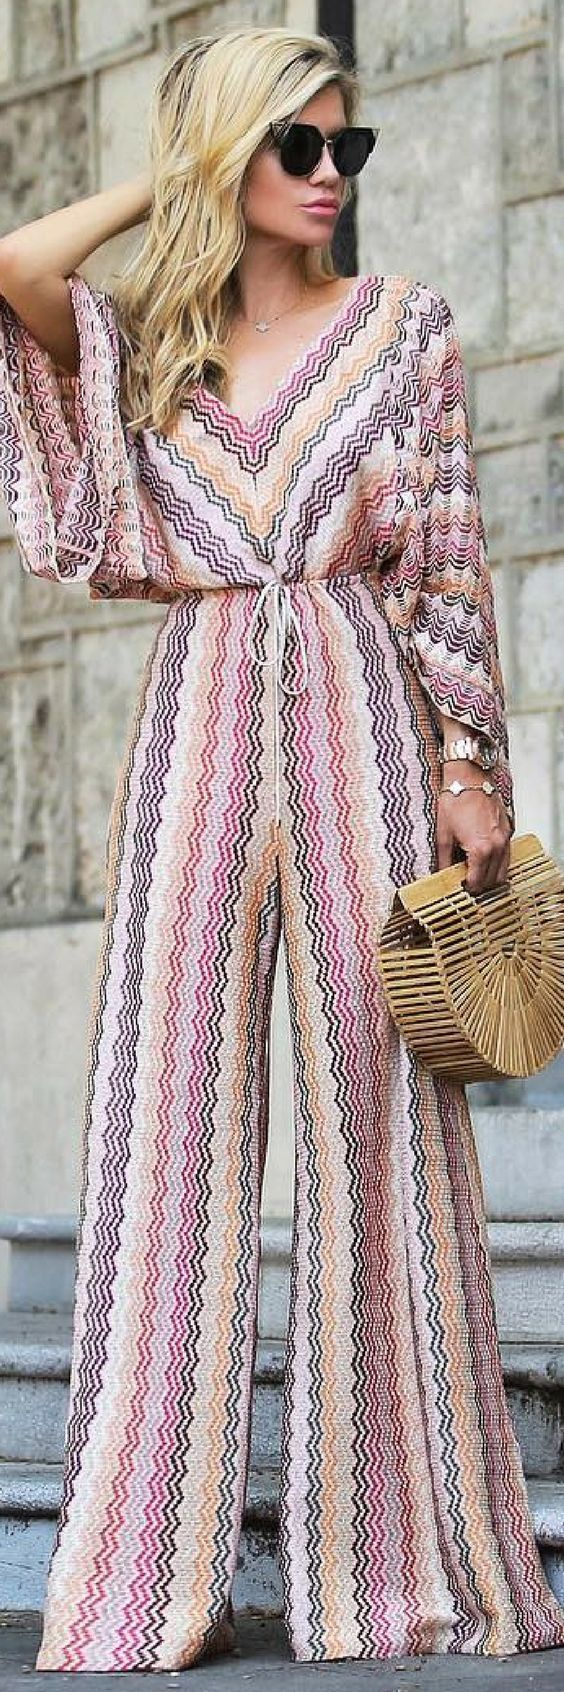 Get This Beautiful Knit Jumpsuit That Will Make Heads Turn - How To Style By Bs http://ecstasymodels.blog/2017/10/08/jumpsuit-will-make-heads-turn-style-bs/